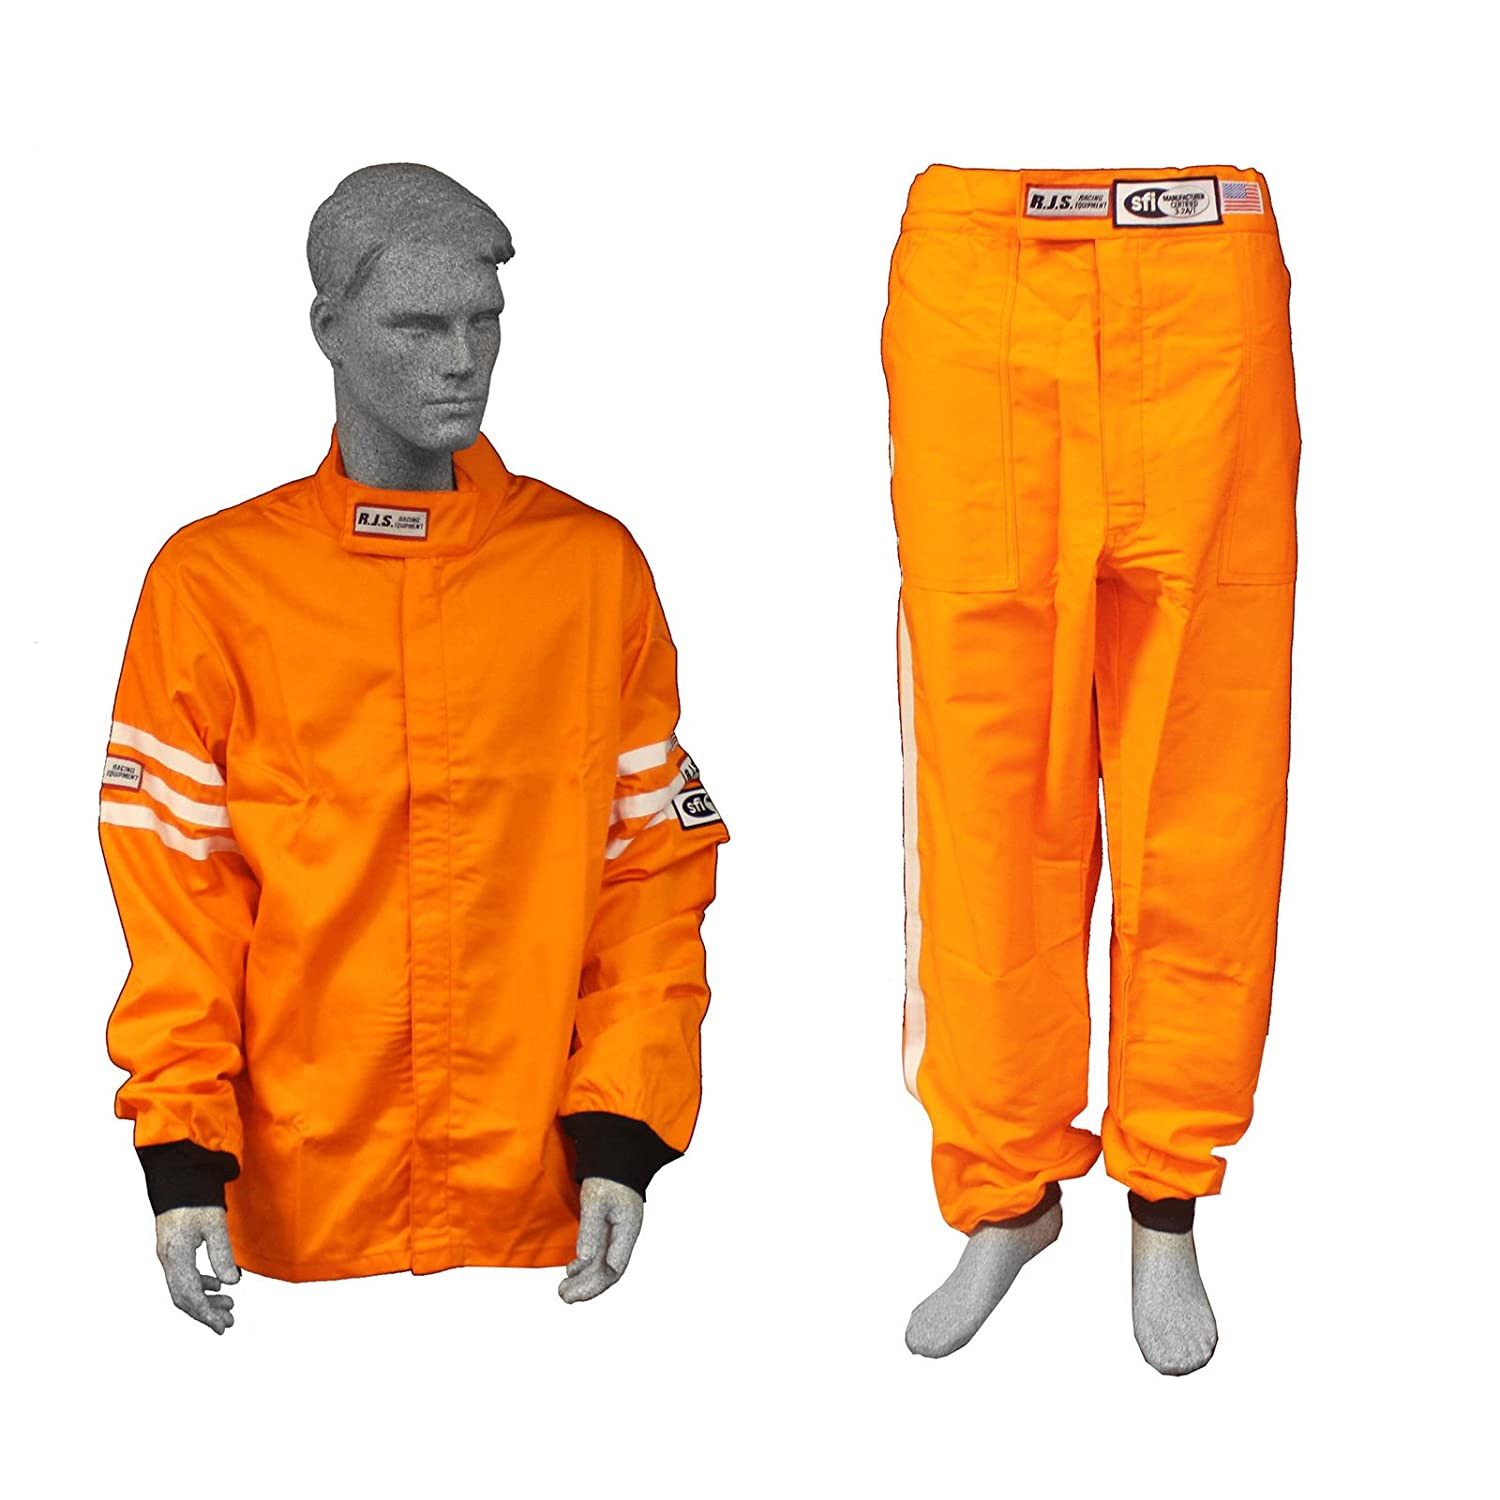 Racerdirect RJS Racing SFI 3.2A/1 Classic FIRE Suit Race Jacket & Pants Orange Size Adult XL RJS Racing Equipment